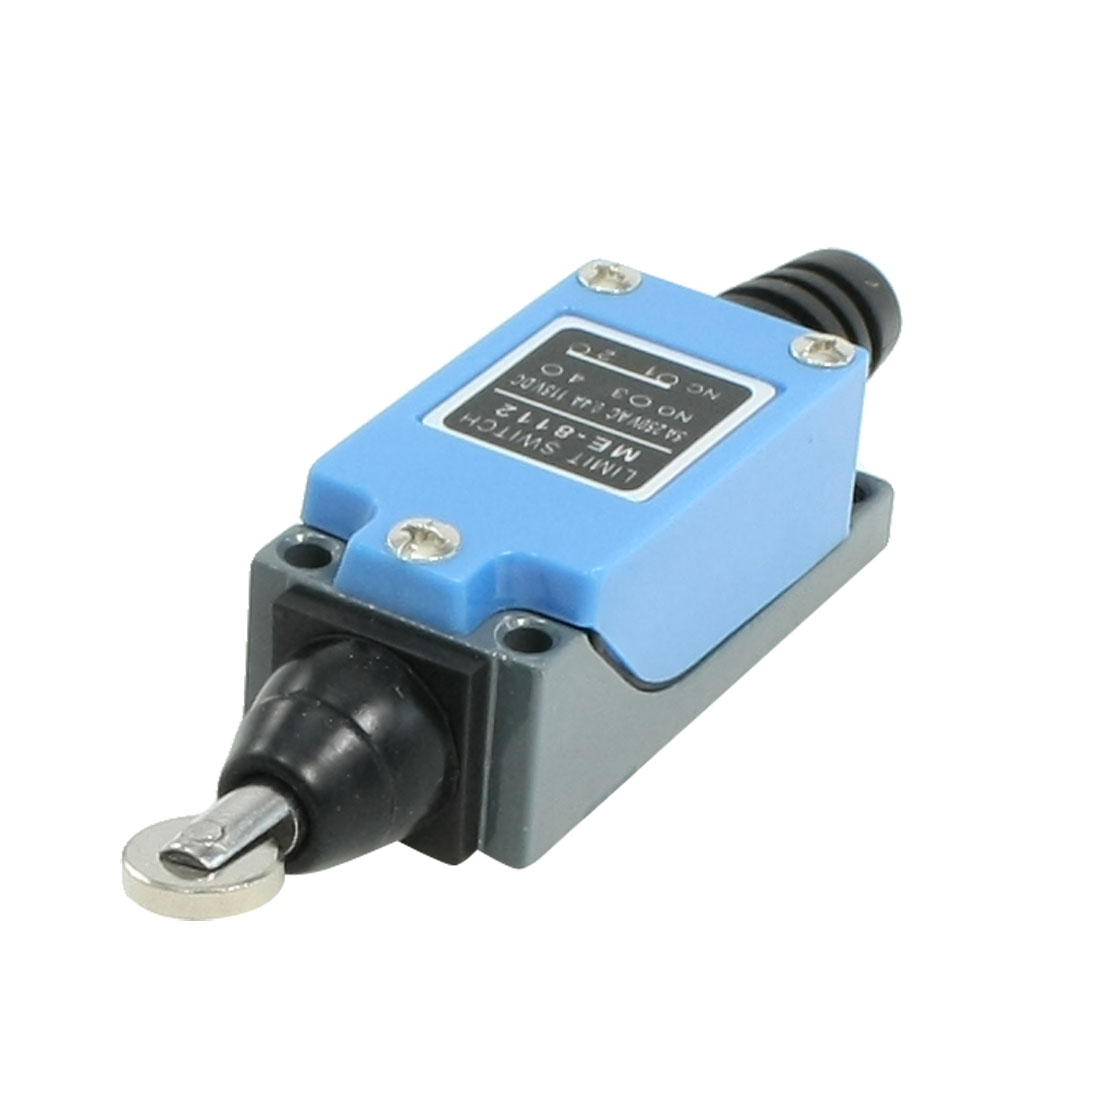 ME-8112 Momentary Parallel Roller Plunger Enclosed Mini Limit Switch for CNC Mill Plasma